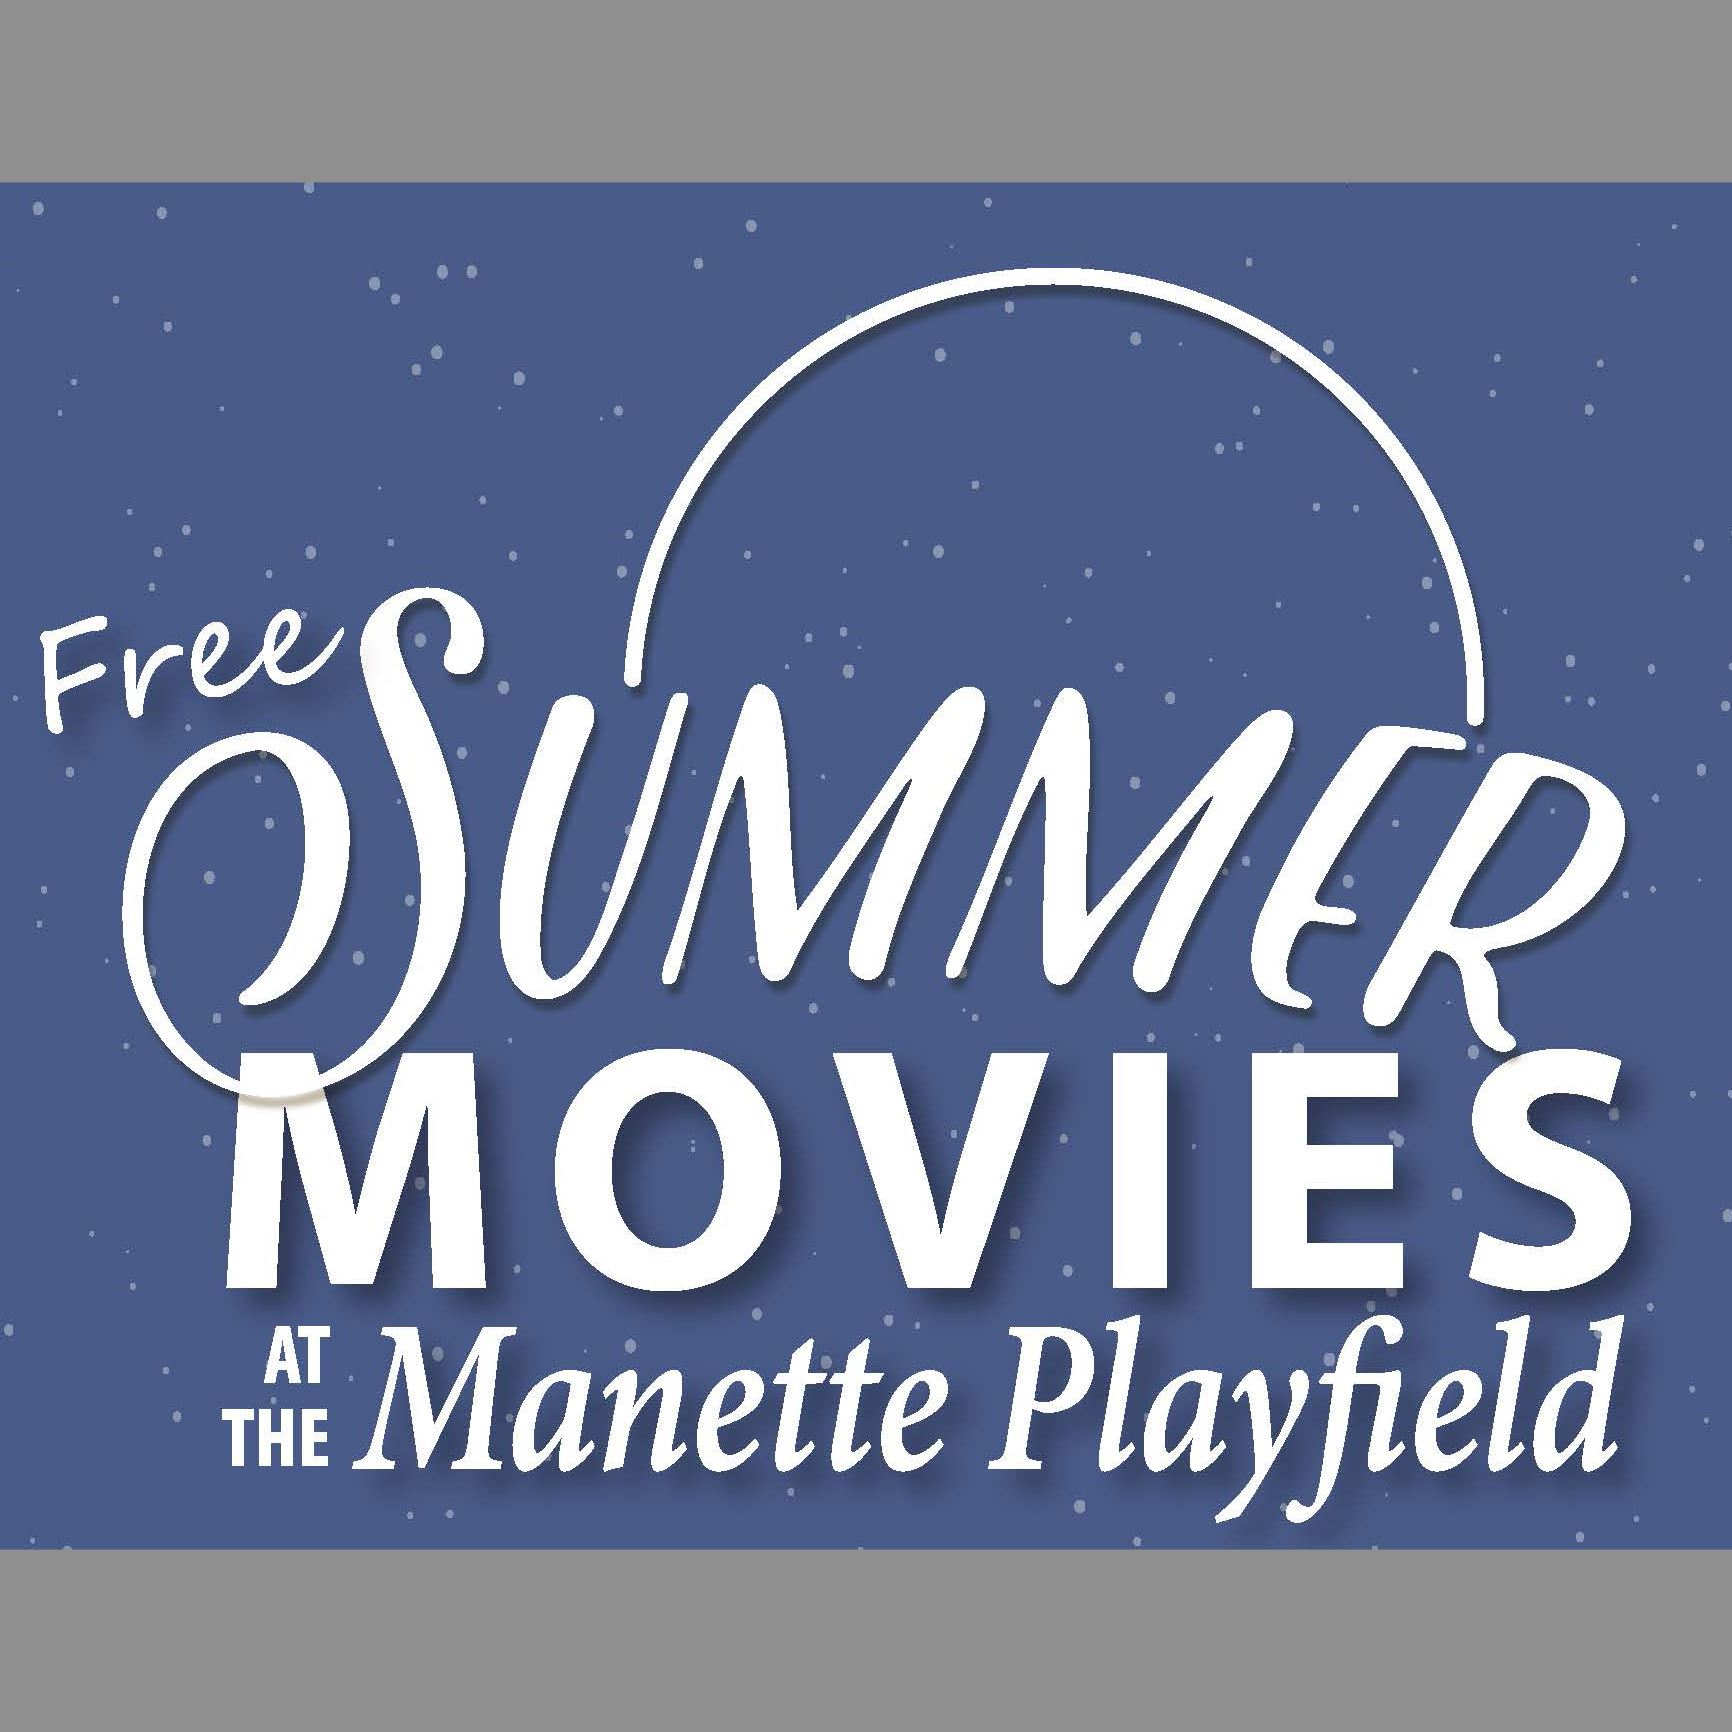 Summer Movies at Manette Playfield